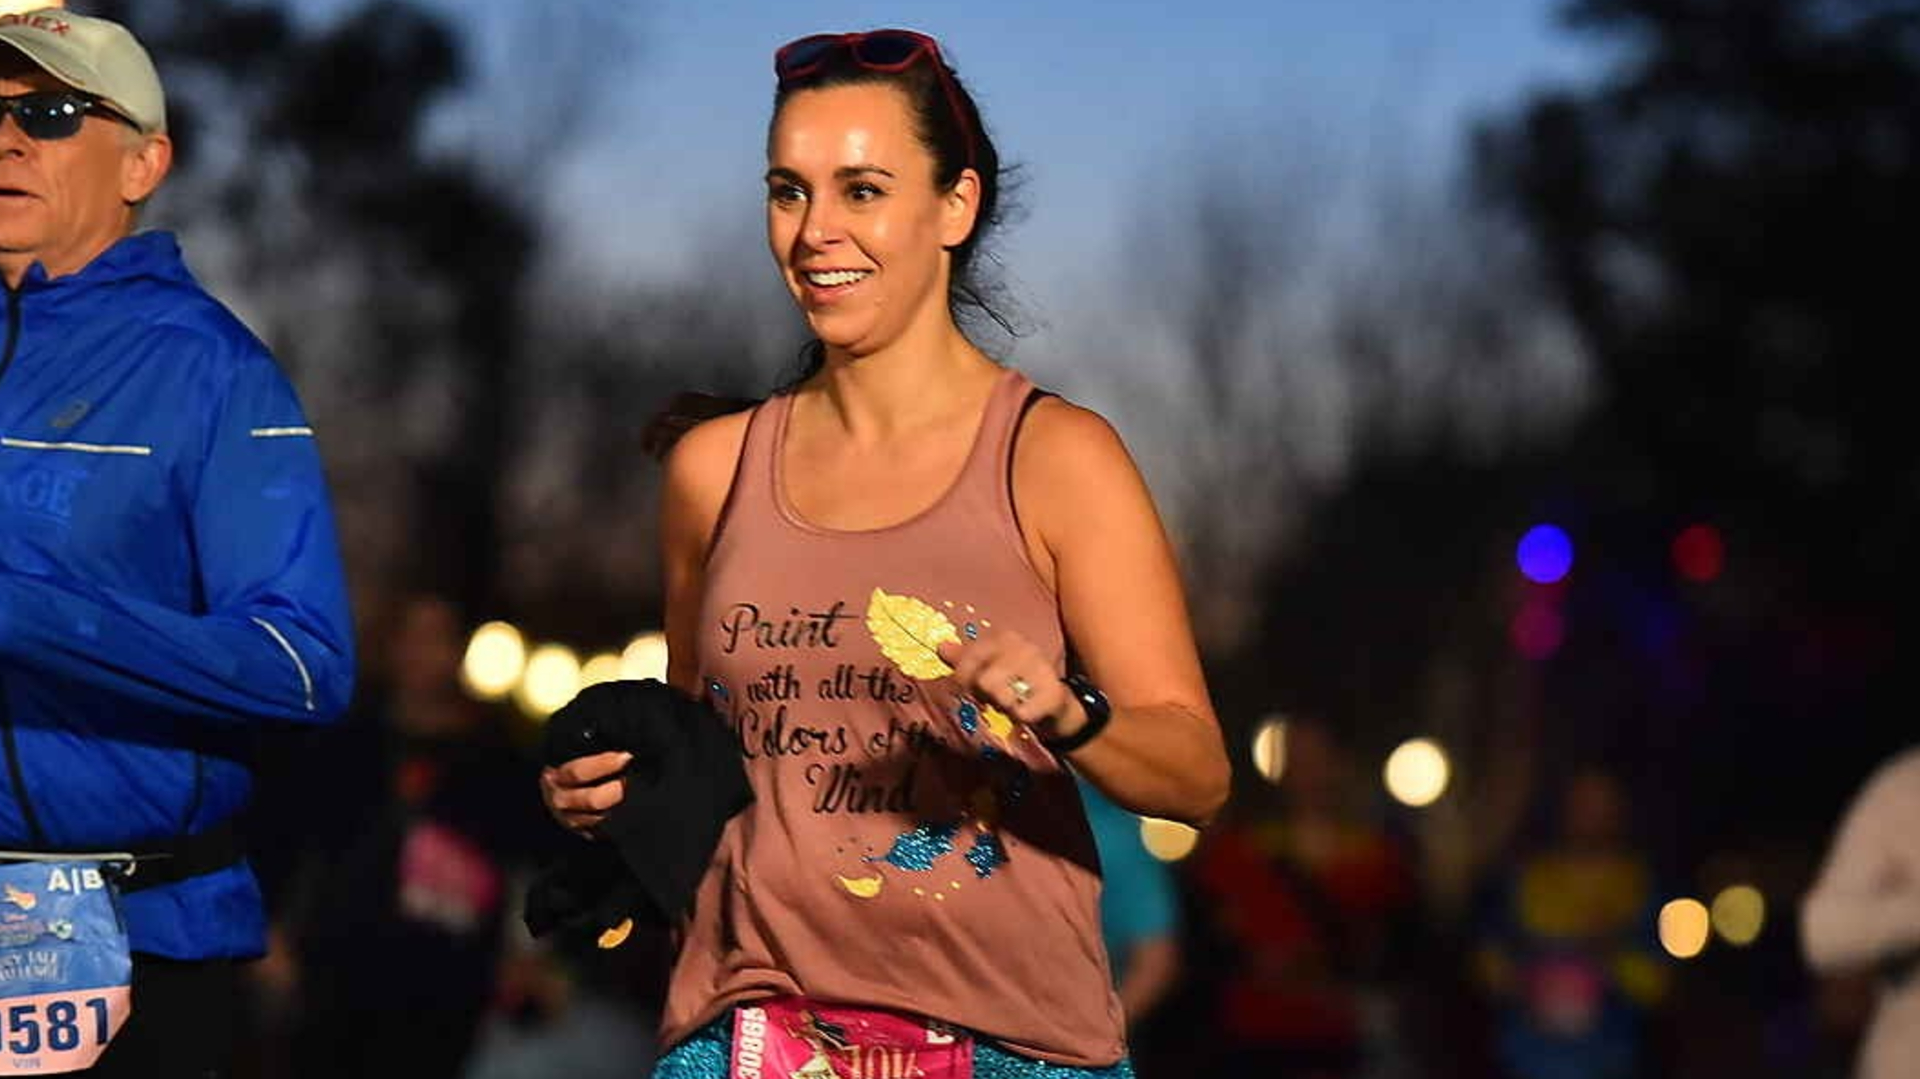 Andrea is a marathon runner, a running coach, and a mom, but she was sidelined by incredible pain with no clear cause. Her journey to feeling better was a marathon in its own right, requiring multiple doctors and tests before she had a name for the cause of her pain: endometriosis.